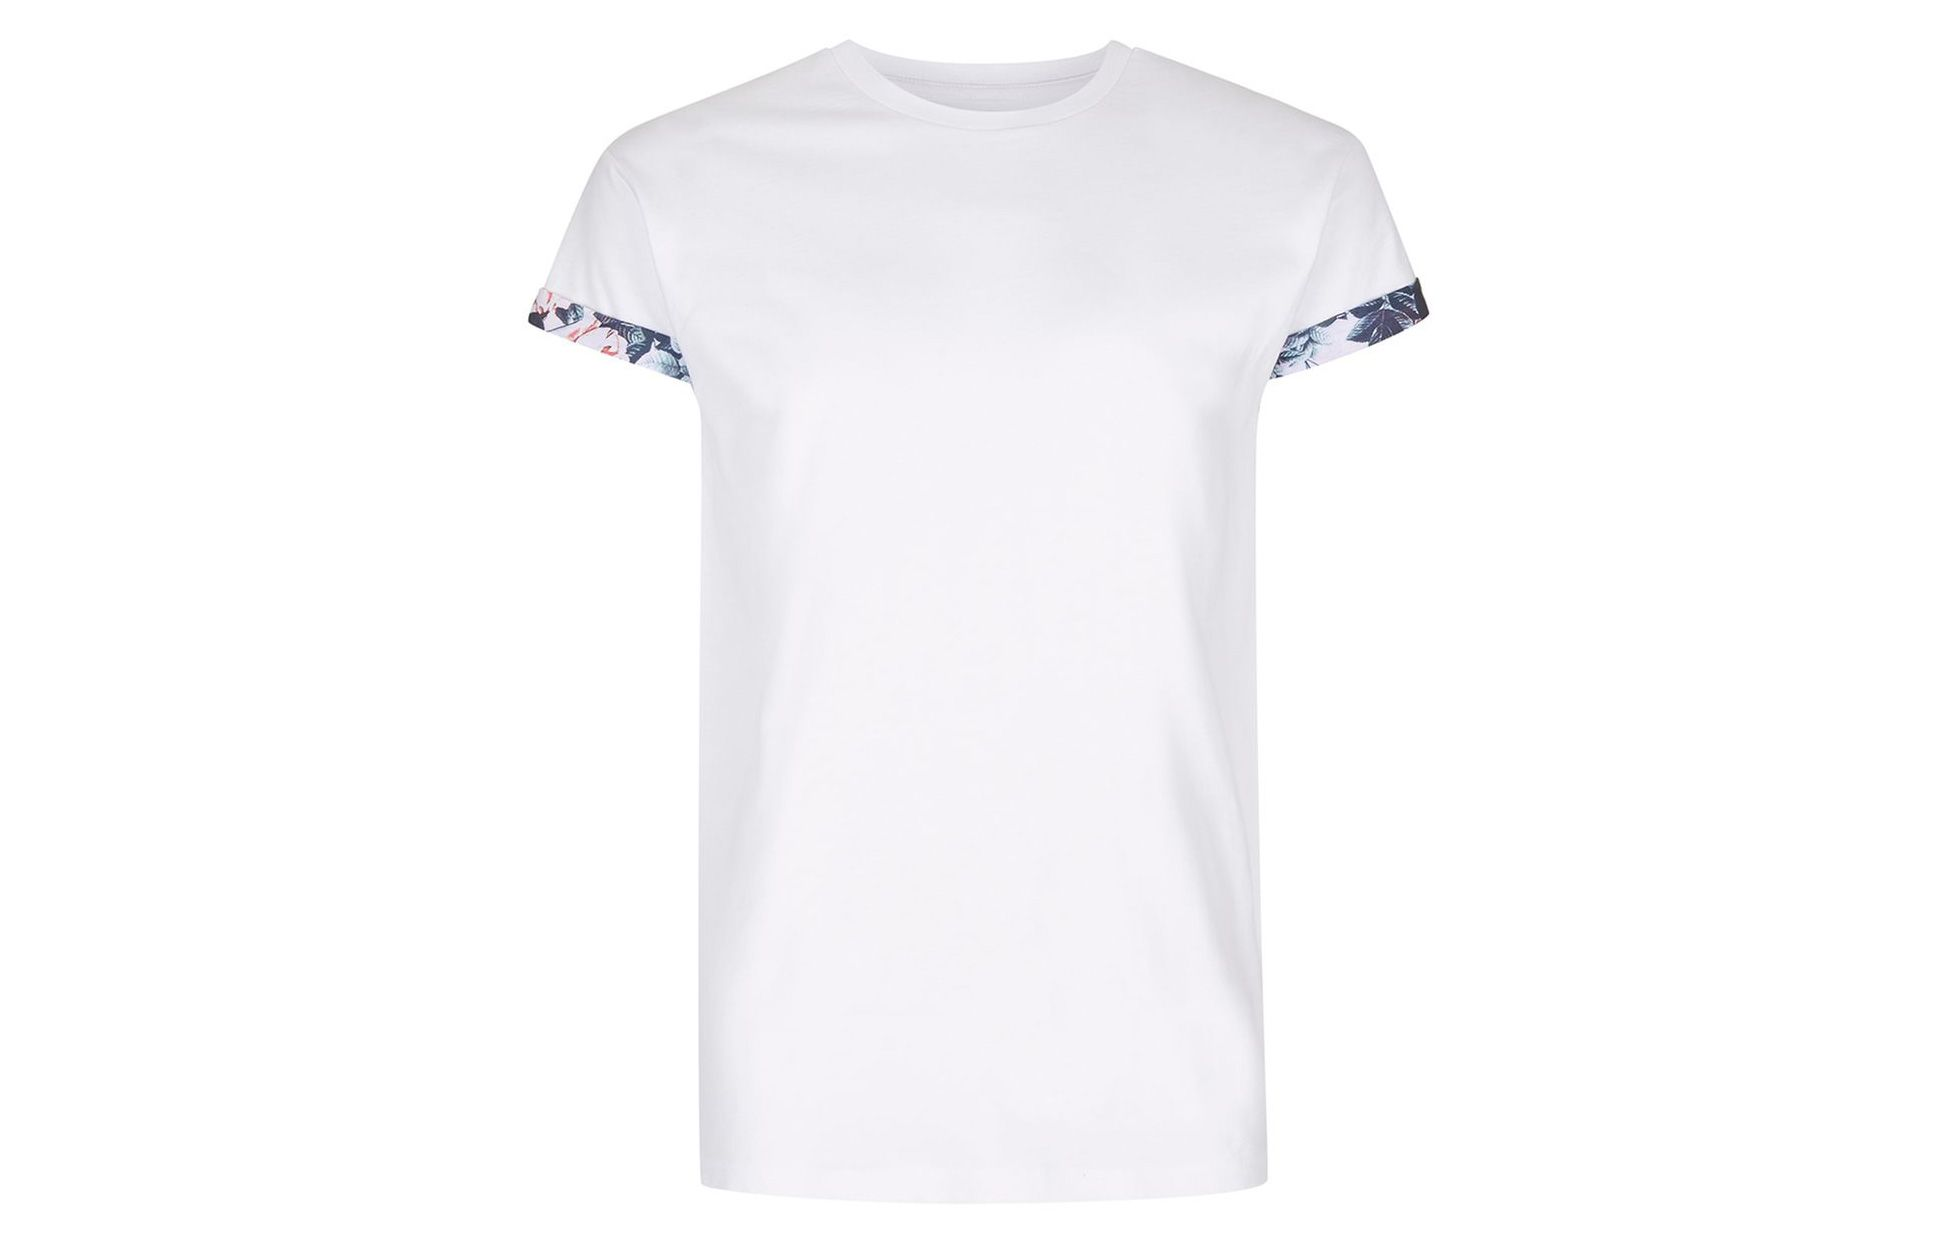 3e83da8b The Best Graphic Tees for Under $30 | Men's Health